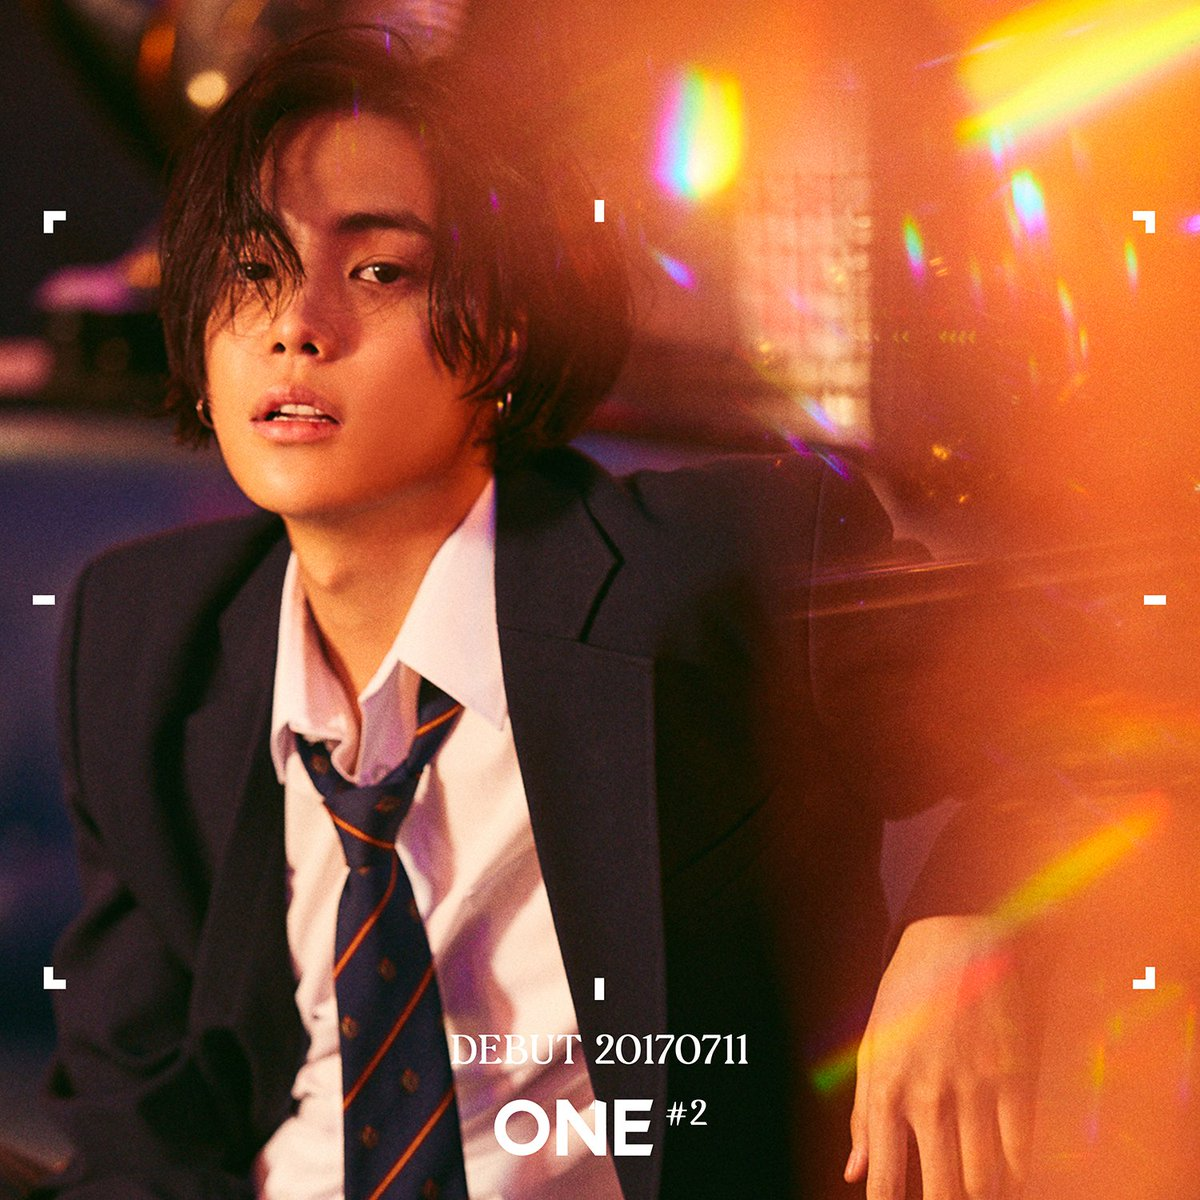 [ONE - DEBUT TEASER #2] originally posted by https://t.co/XZQ3IOI9MY #ONE #2 #원 #정제원 #DEBUT #20170711 #TEASER #YG